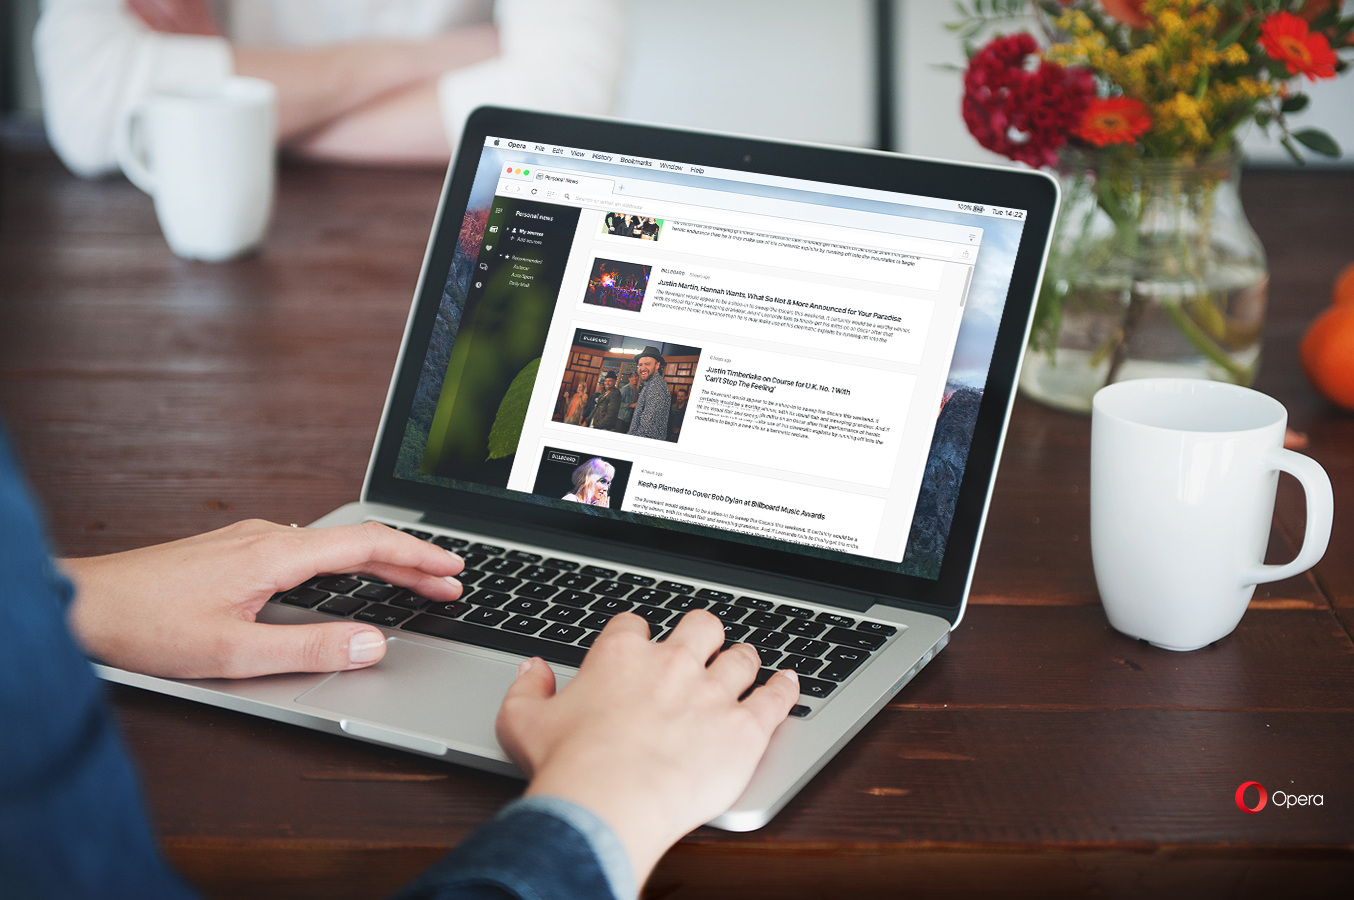 RSS reader in the Opera browser to follow news